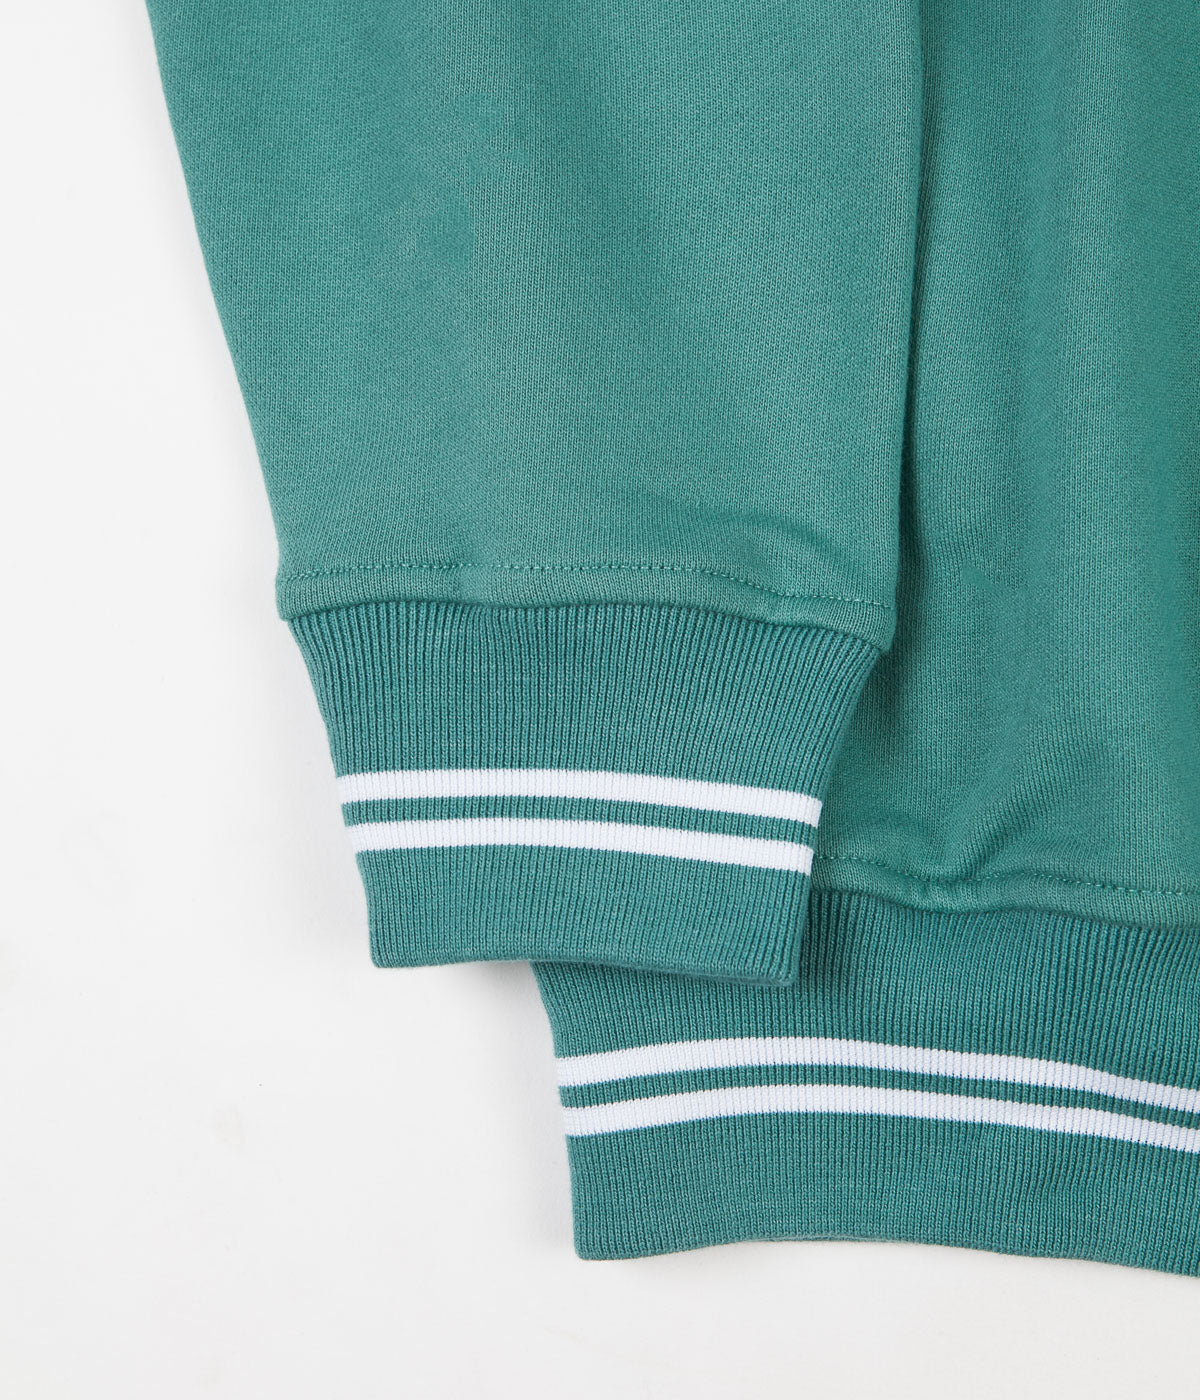 Yardsale YS Embossed Crewneck Sweatshirt - Fern Green